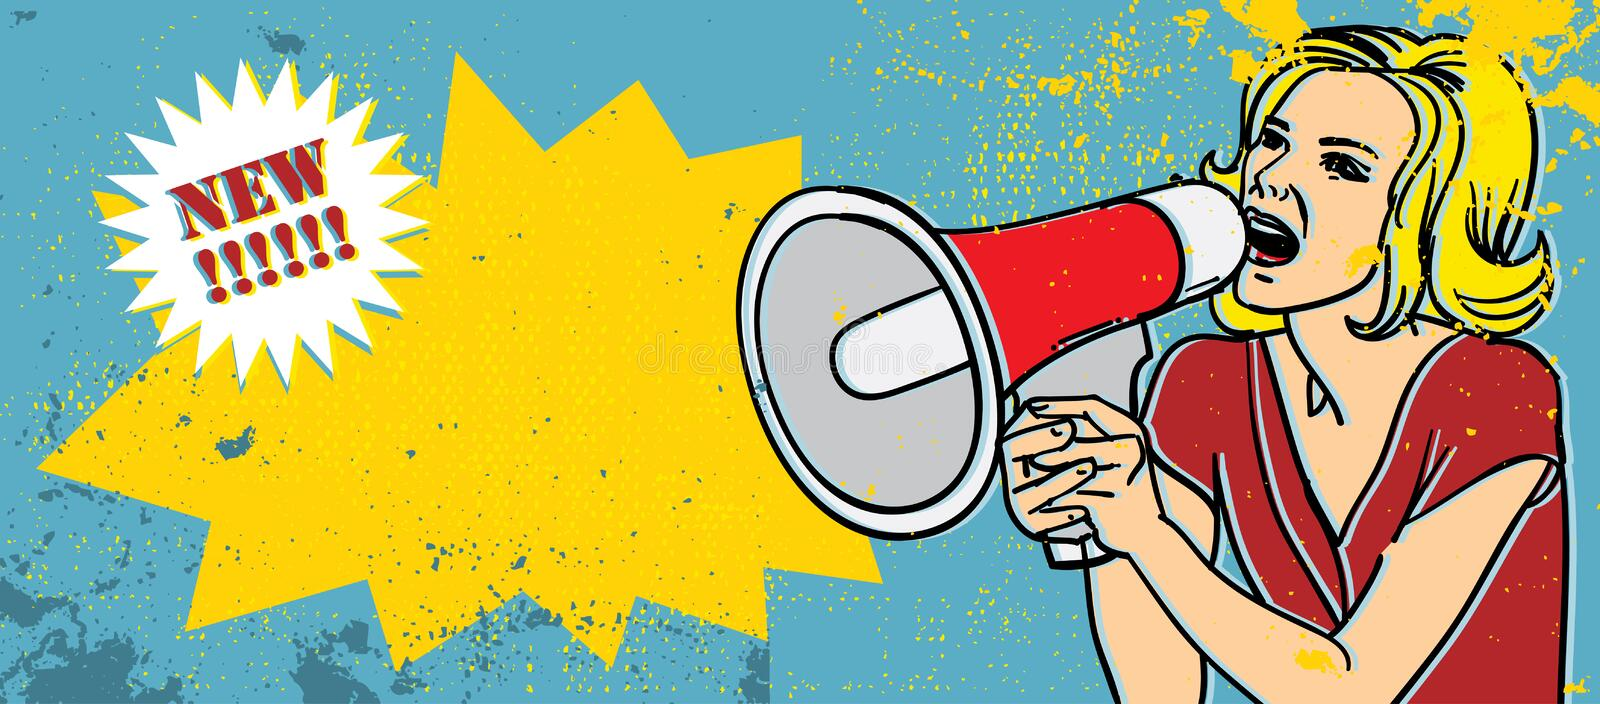 Megaphone blonde woman royalty free illustration